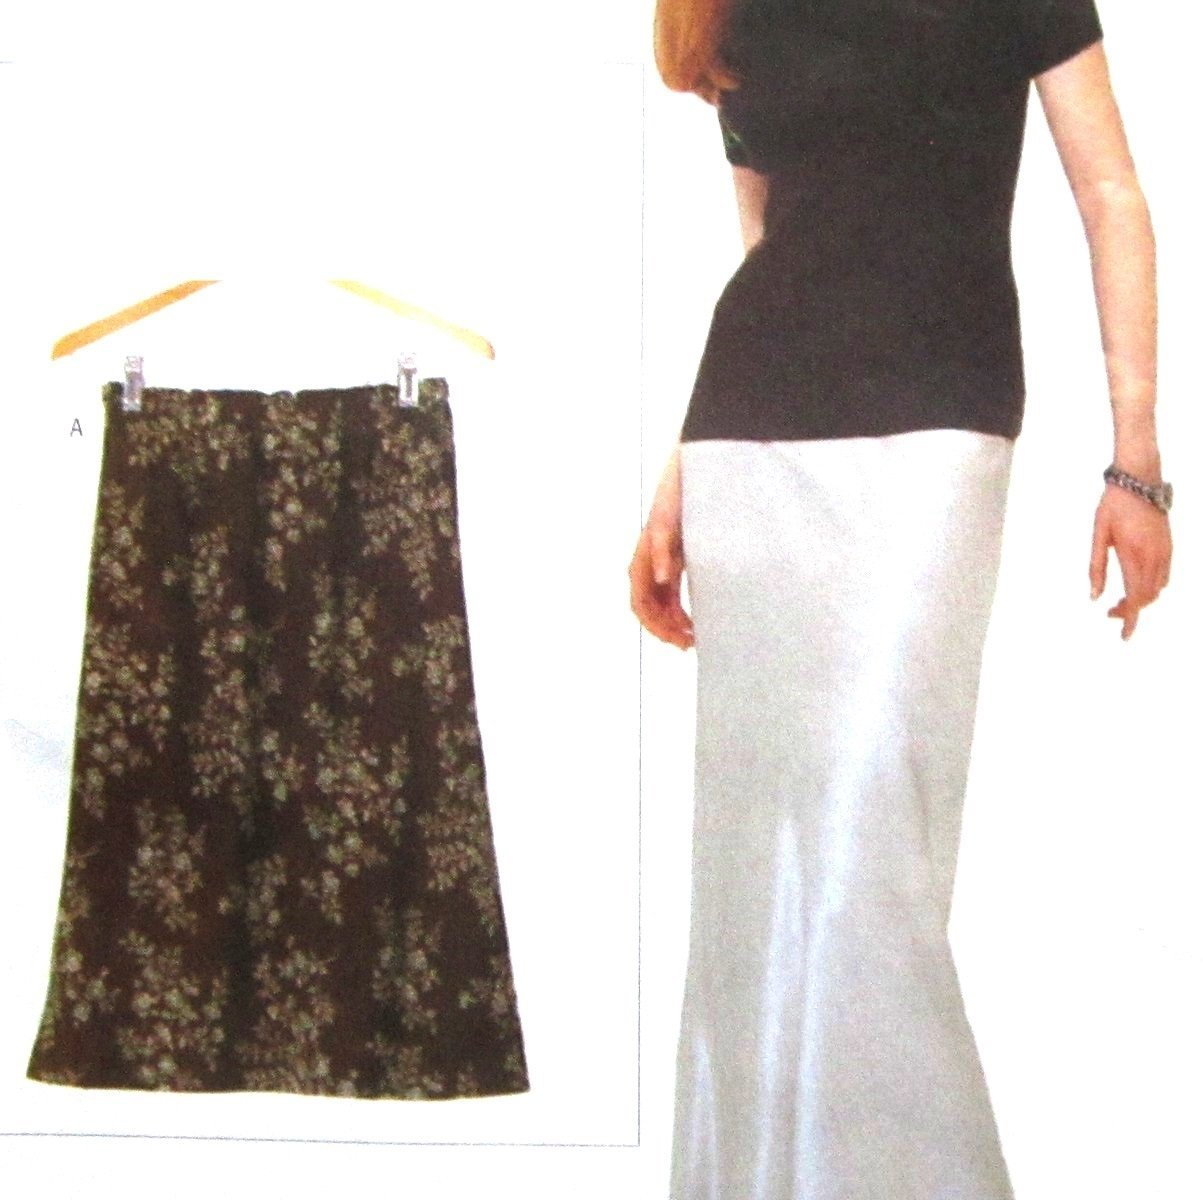 Vogue 9541 Uncut Pattern Misses Bias Cut Skirt Elastic Waist 2 Lengths Sizes XS-XL